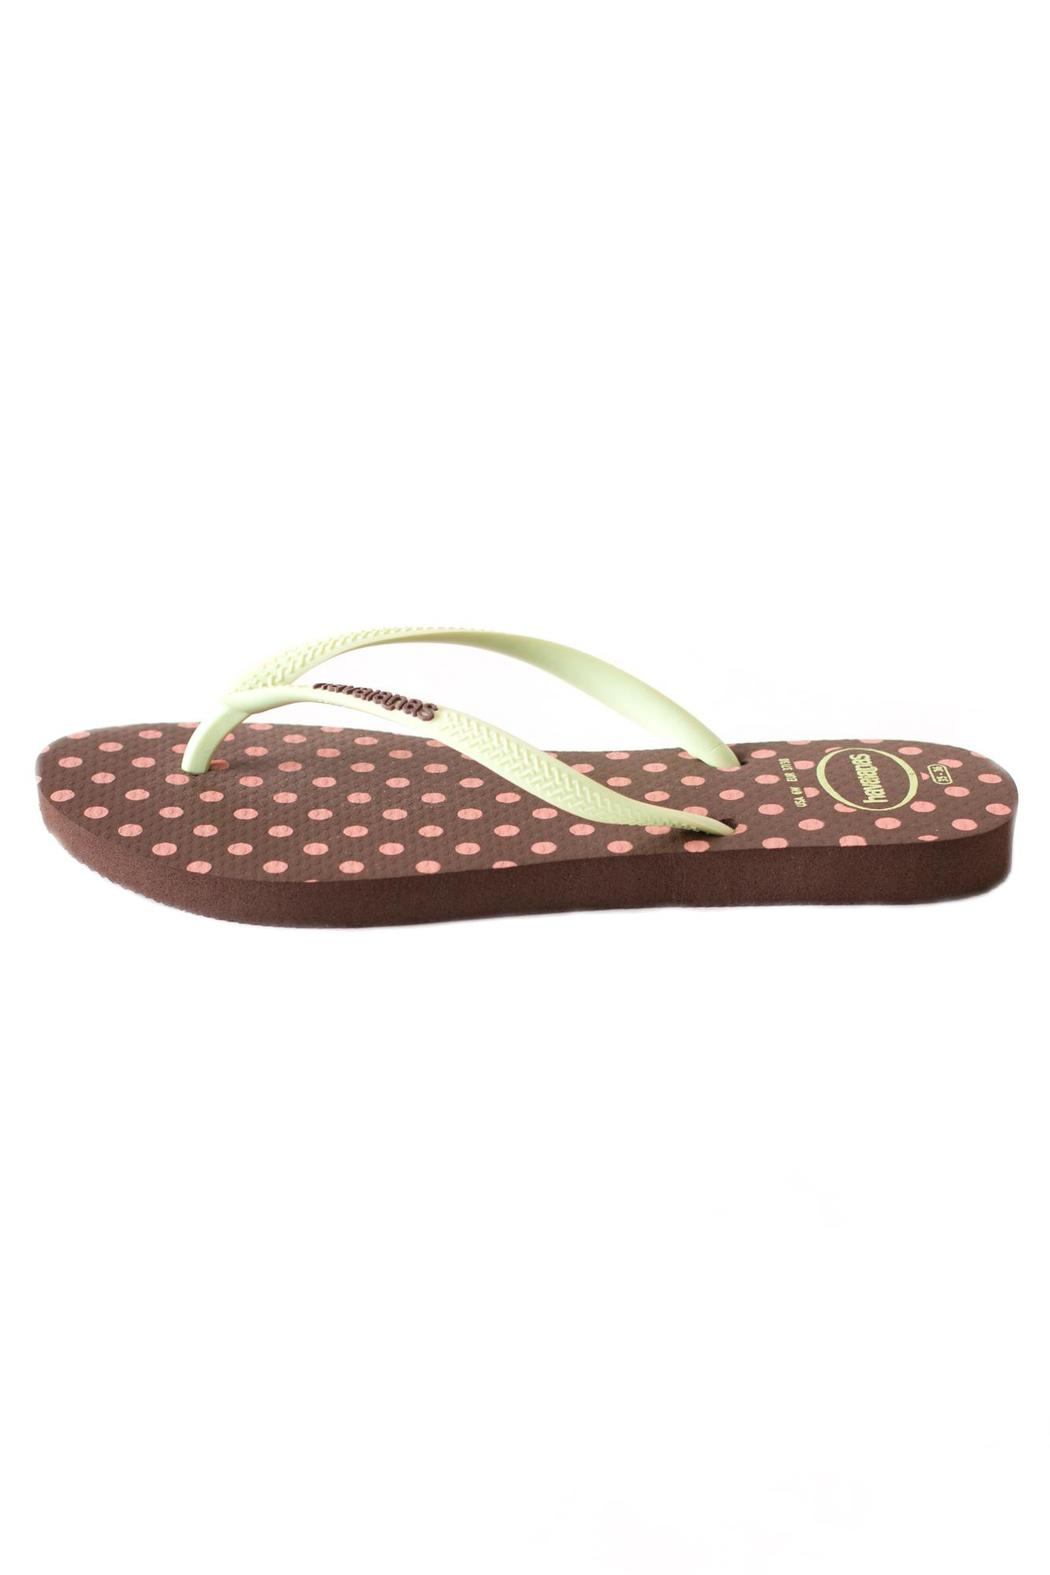 8a17cf439ad246 Havaianas Polka Dot Sandal from Philadelphia by May 23 — Shoptiques